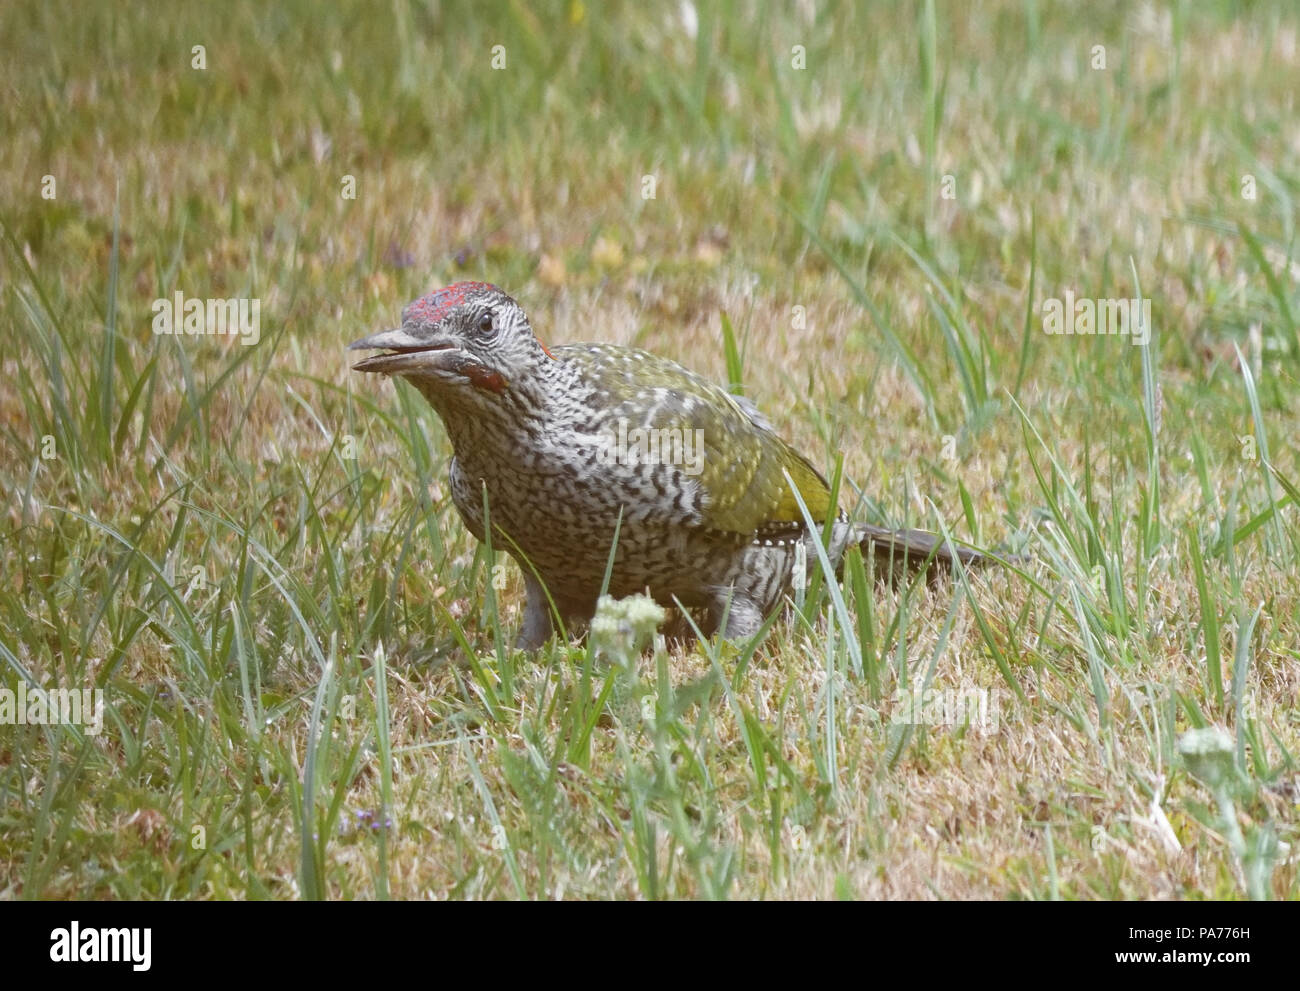 A young green woodpecker (Picus viridis) with its surprisingly speckled juvenile plumage searches for ant nests on a drought parched lawn dampened by recent rain. Bedgebury Forest, Kent, England. UK. - Stock Image